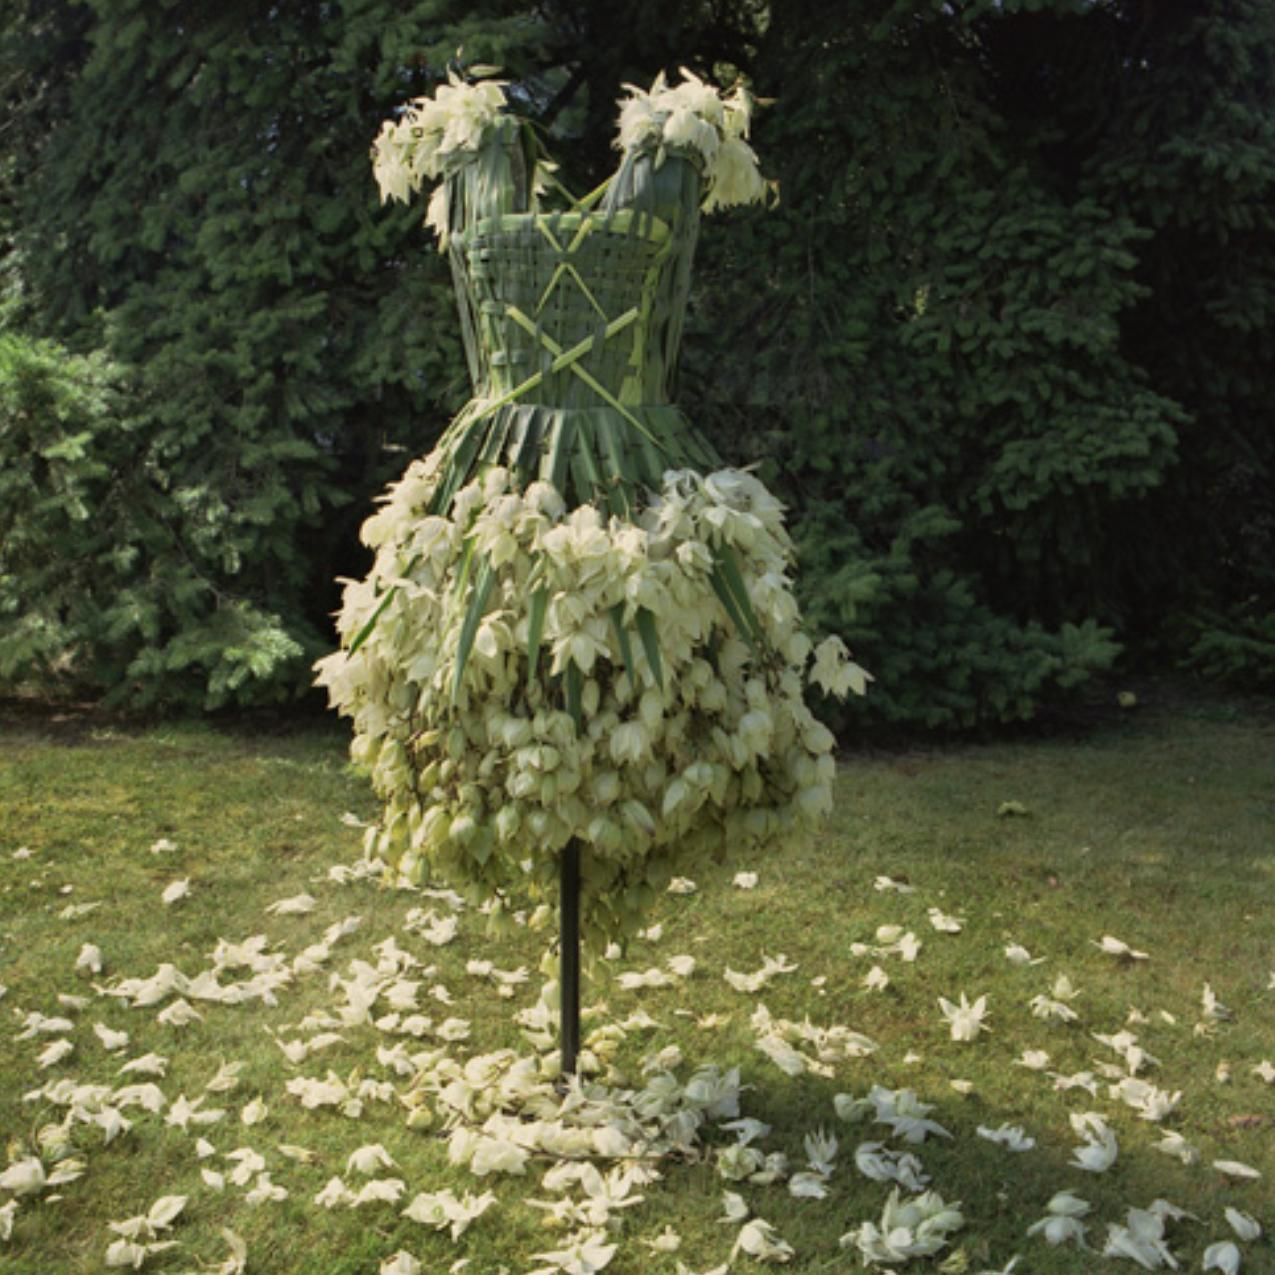 [The+Villa_4_flower+dress.jpg]